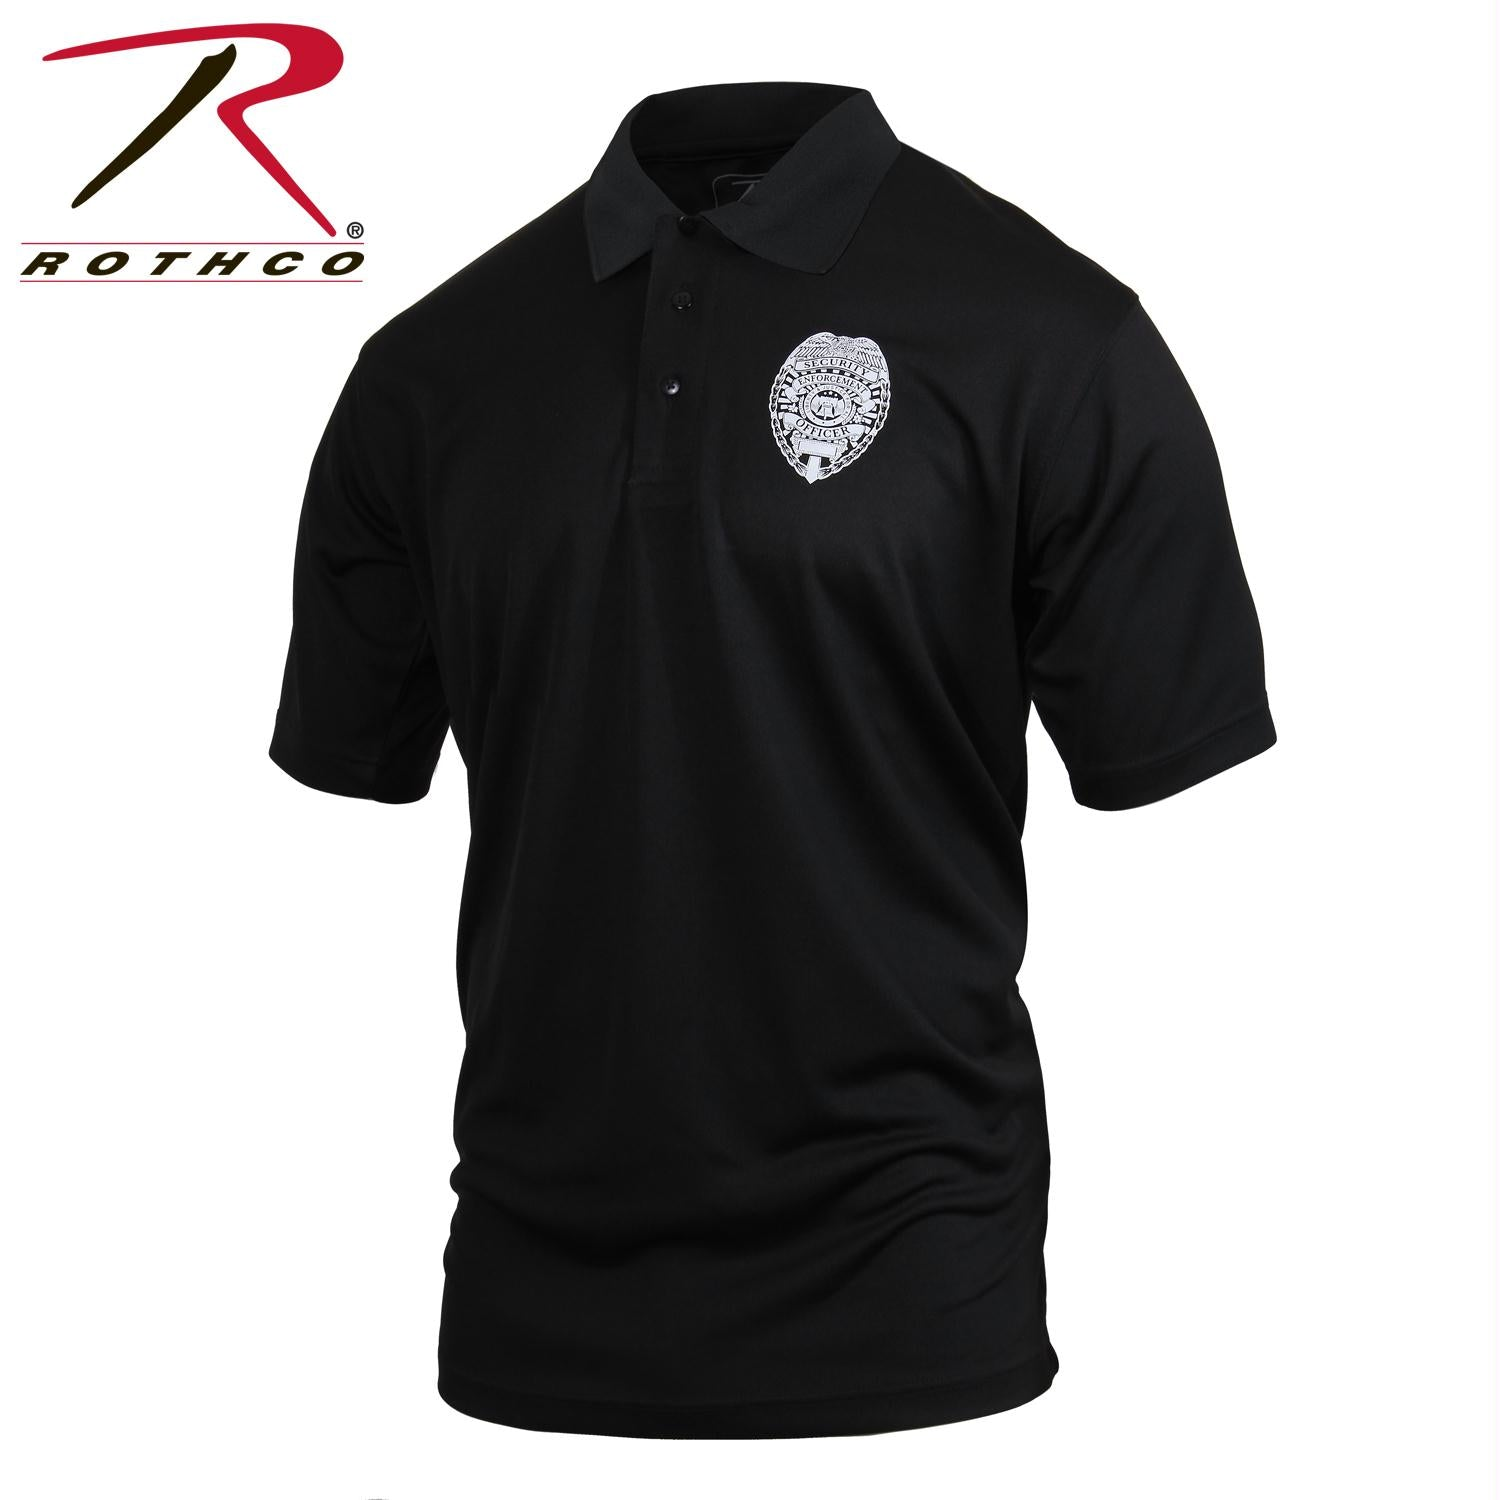 Rothco Moisture Wicking Security Polo Shirt With Badge - L